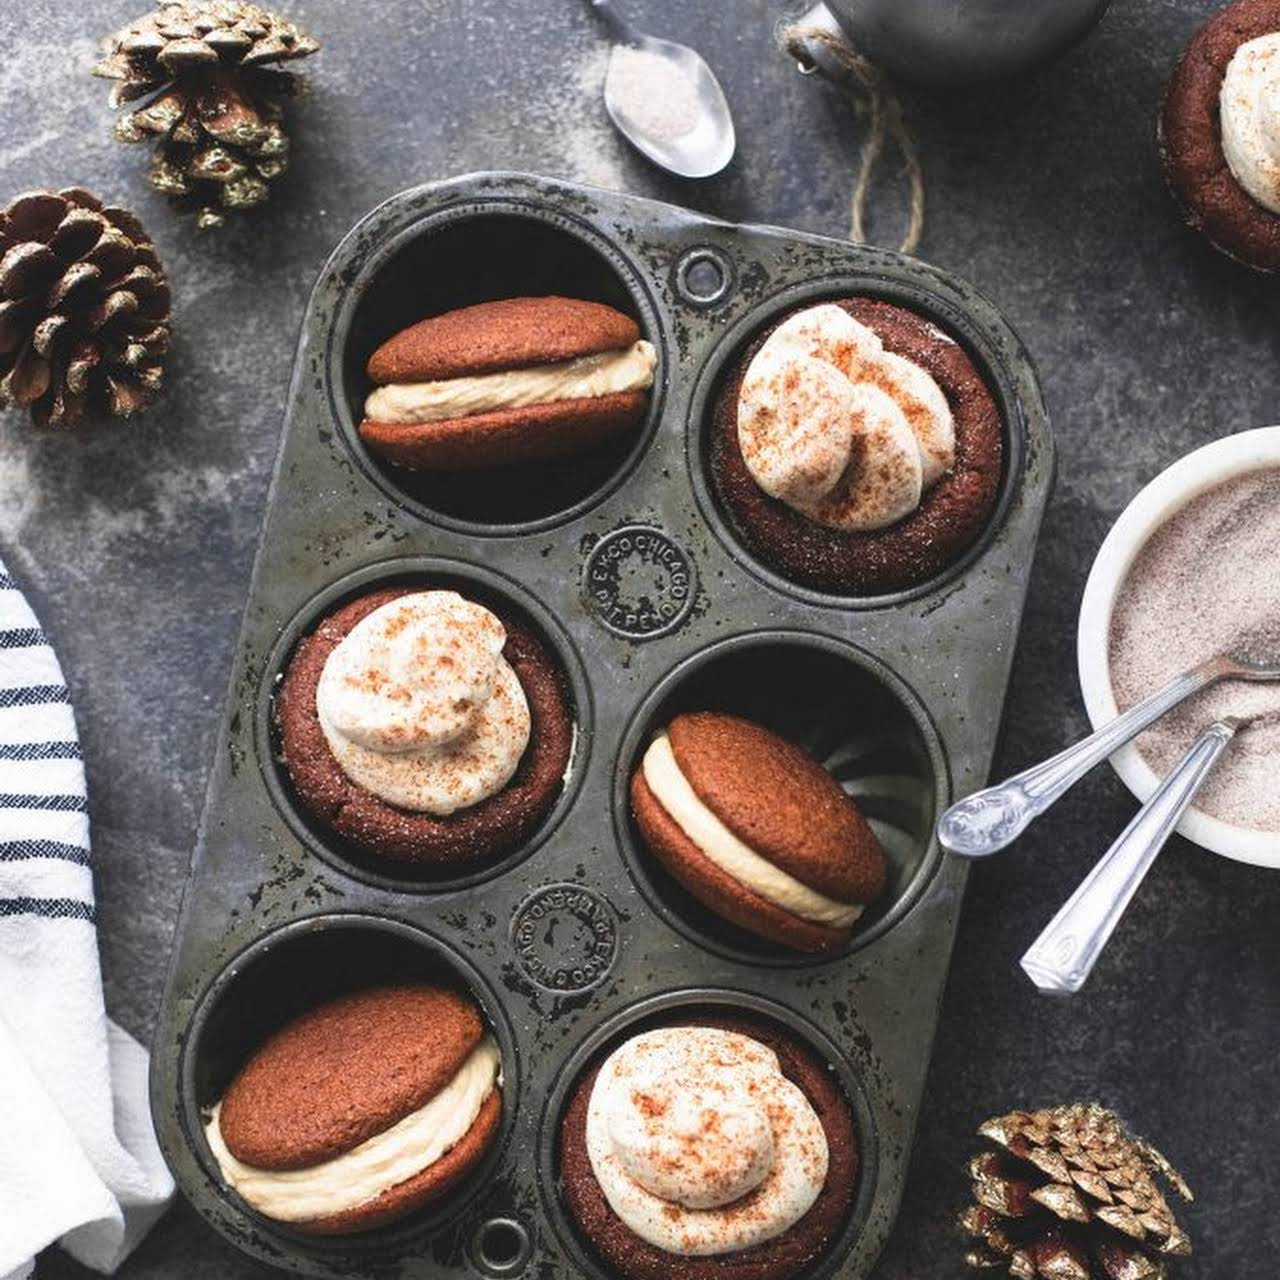 Gingerbread Cheesecake Cups and Gingerbread Whoopie Pies with Caramel Frosting